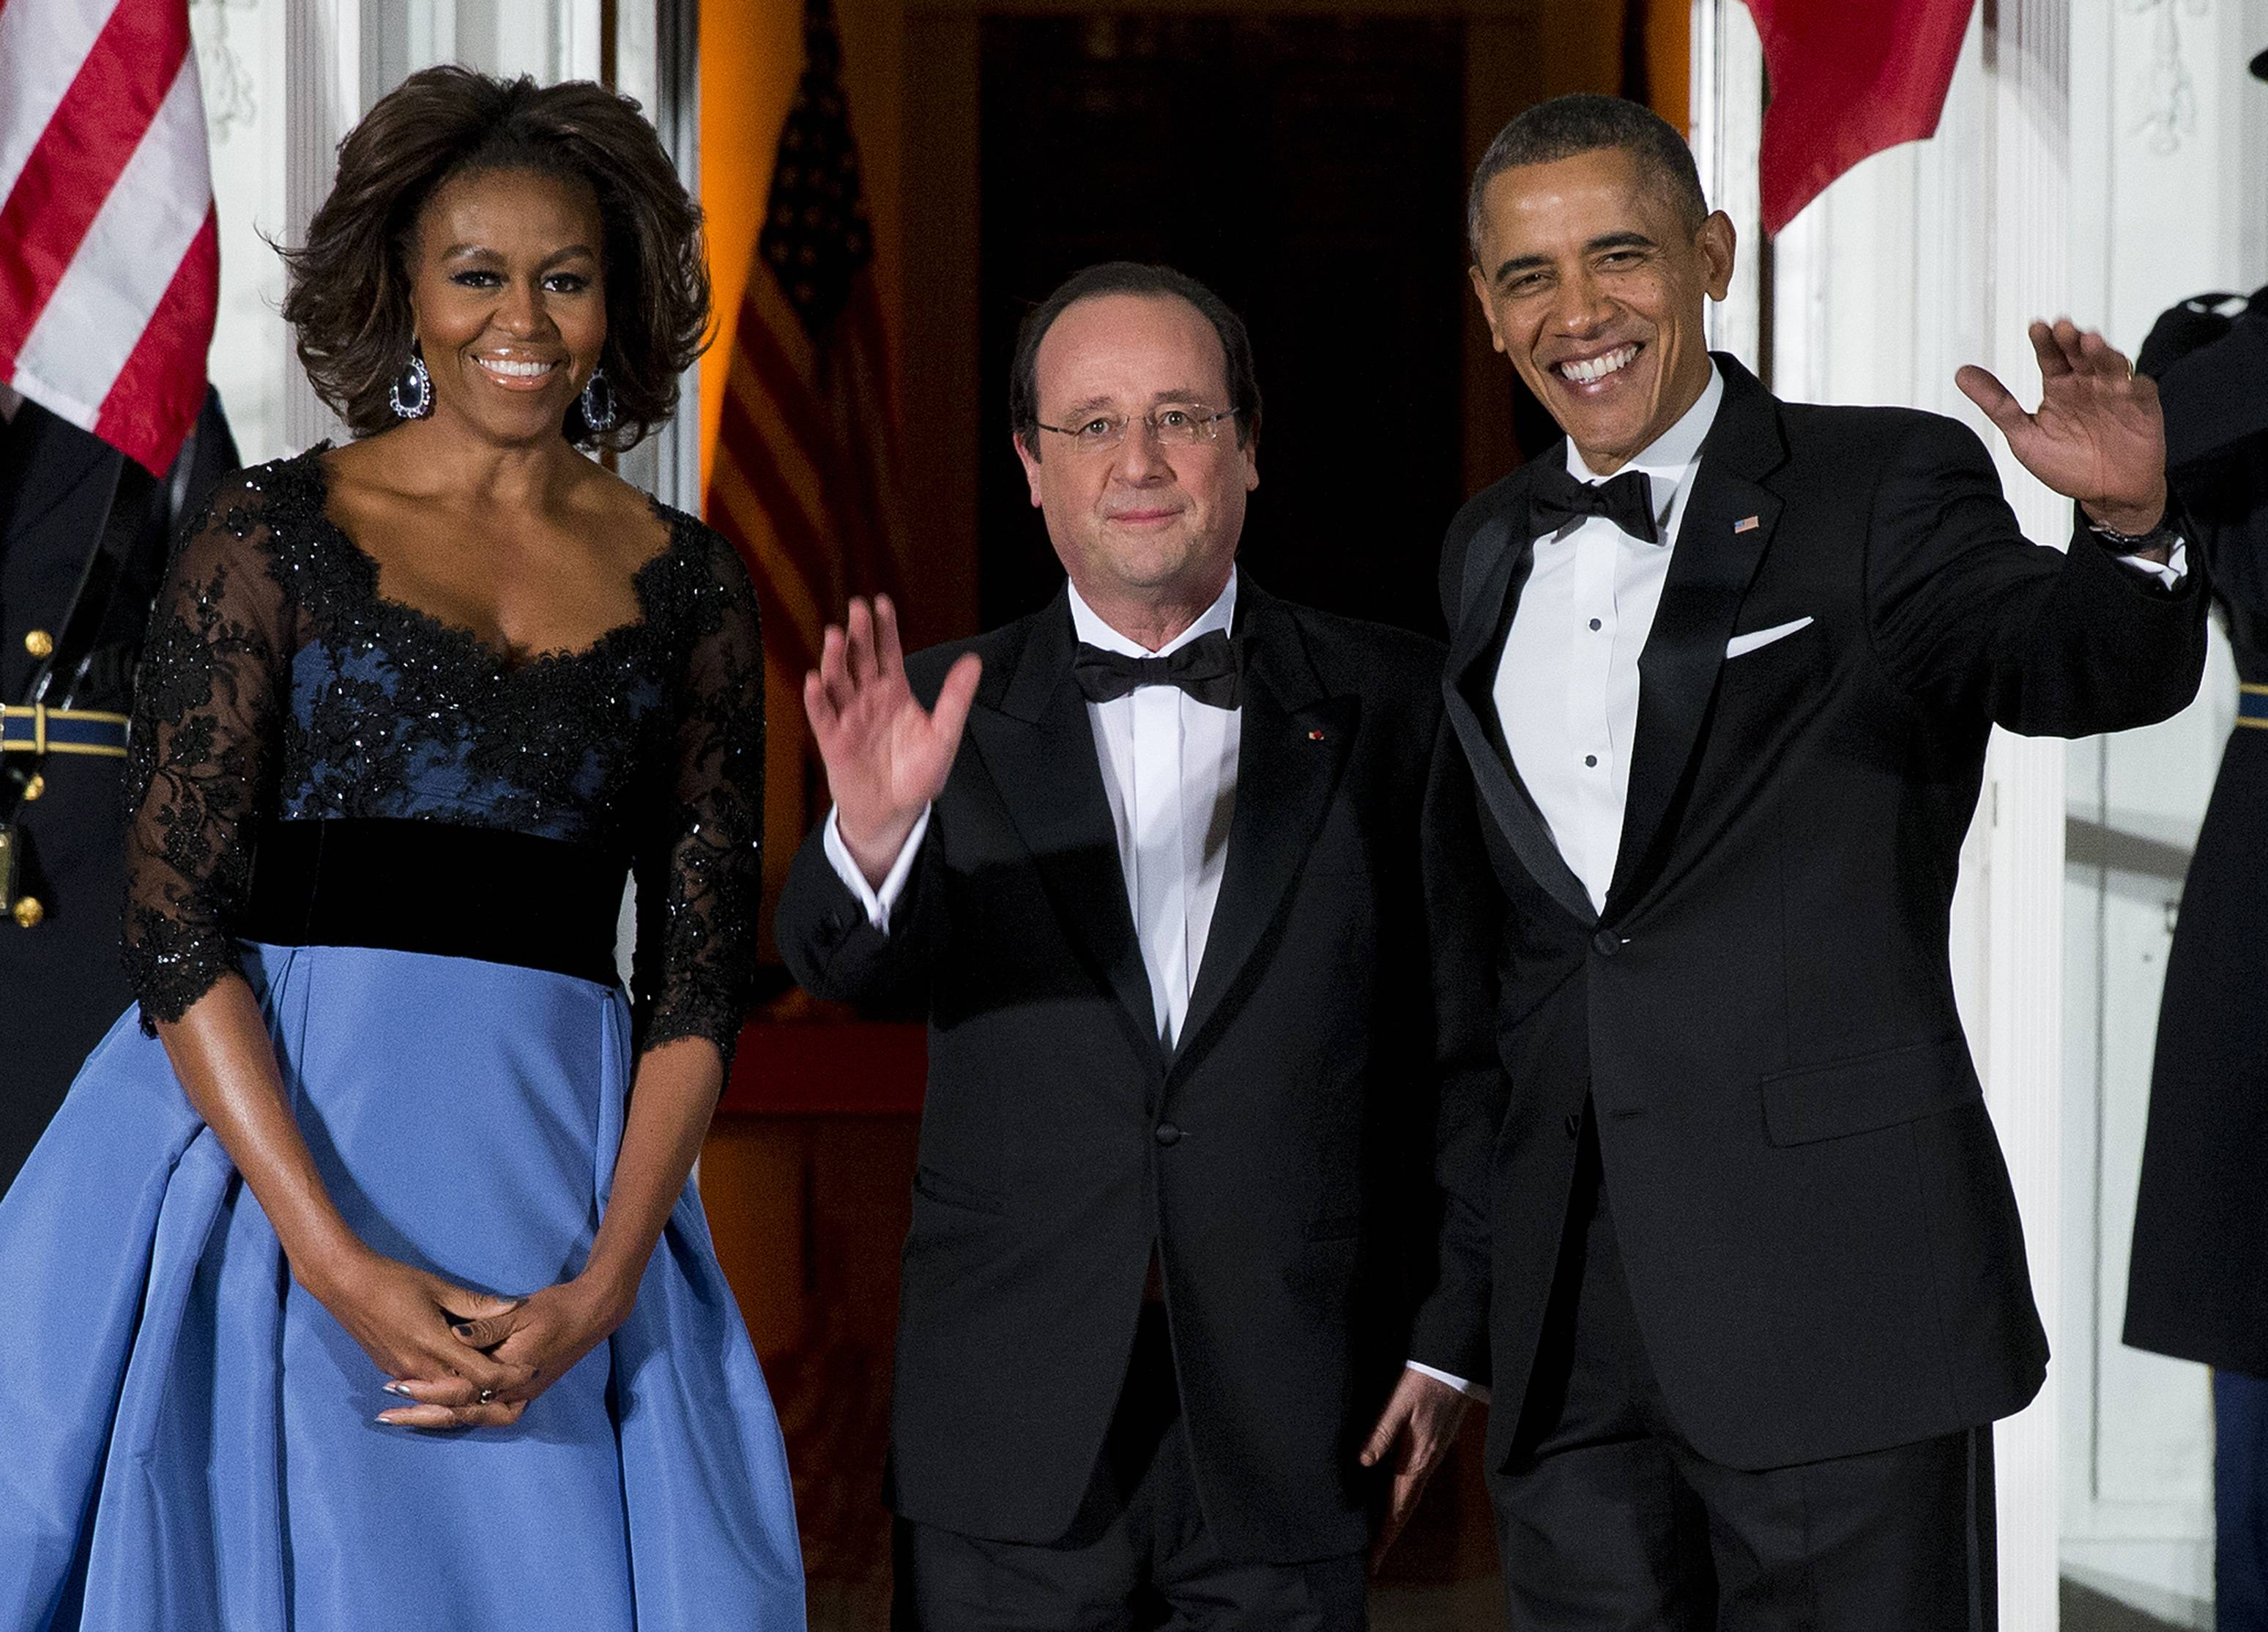 First lady Michelle Obama, left, and President Barack Obama welcome French President François Hollande for a State Dinner at the North Portico of the White House on Tuesday.